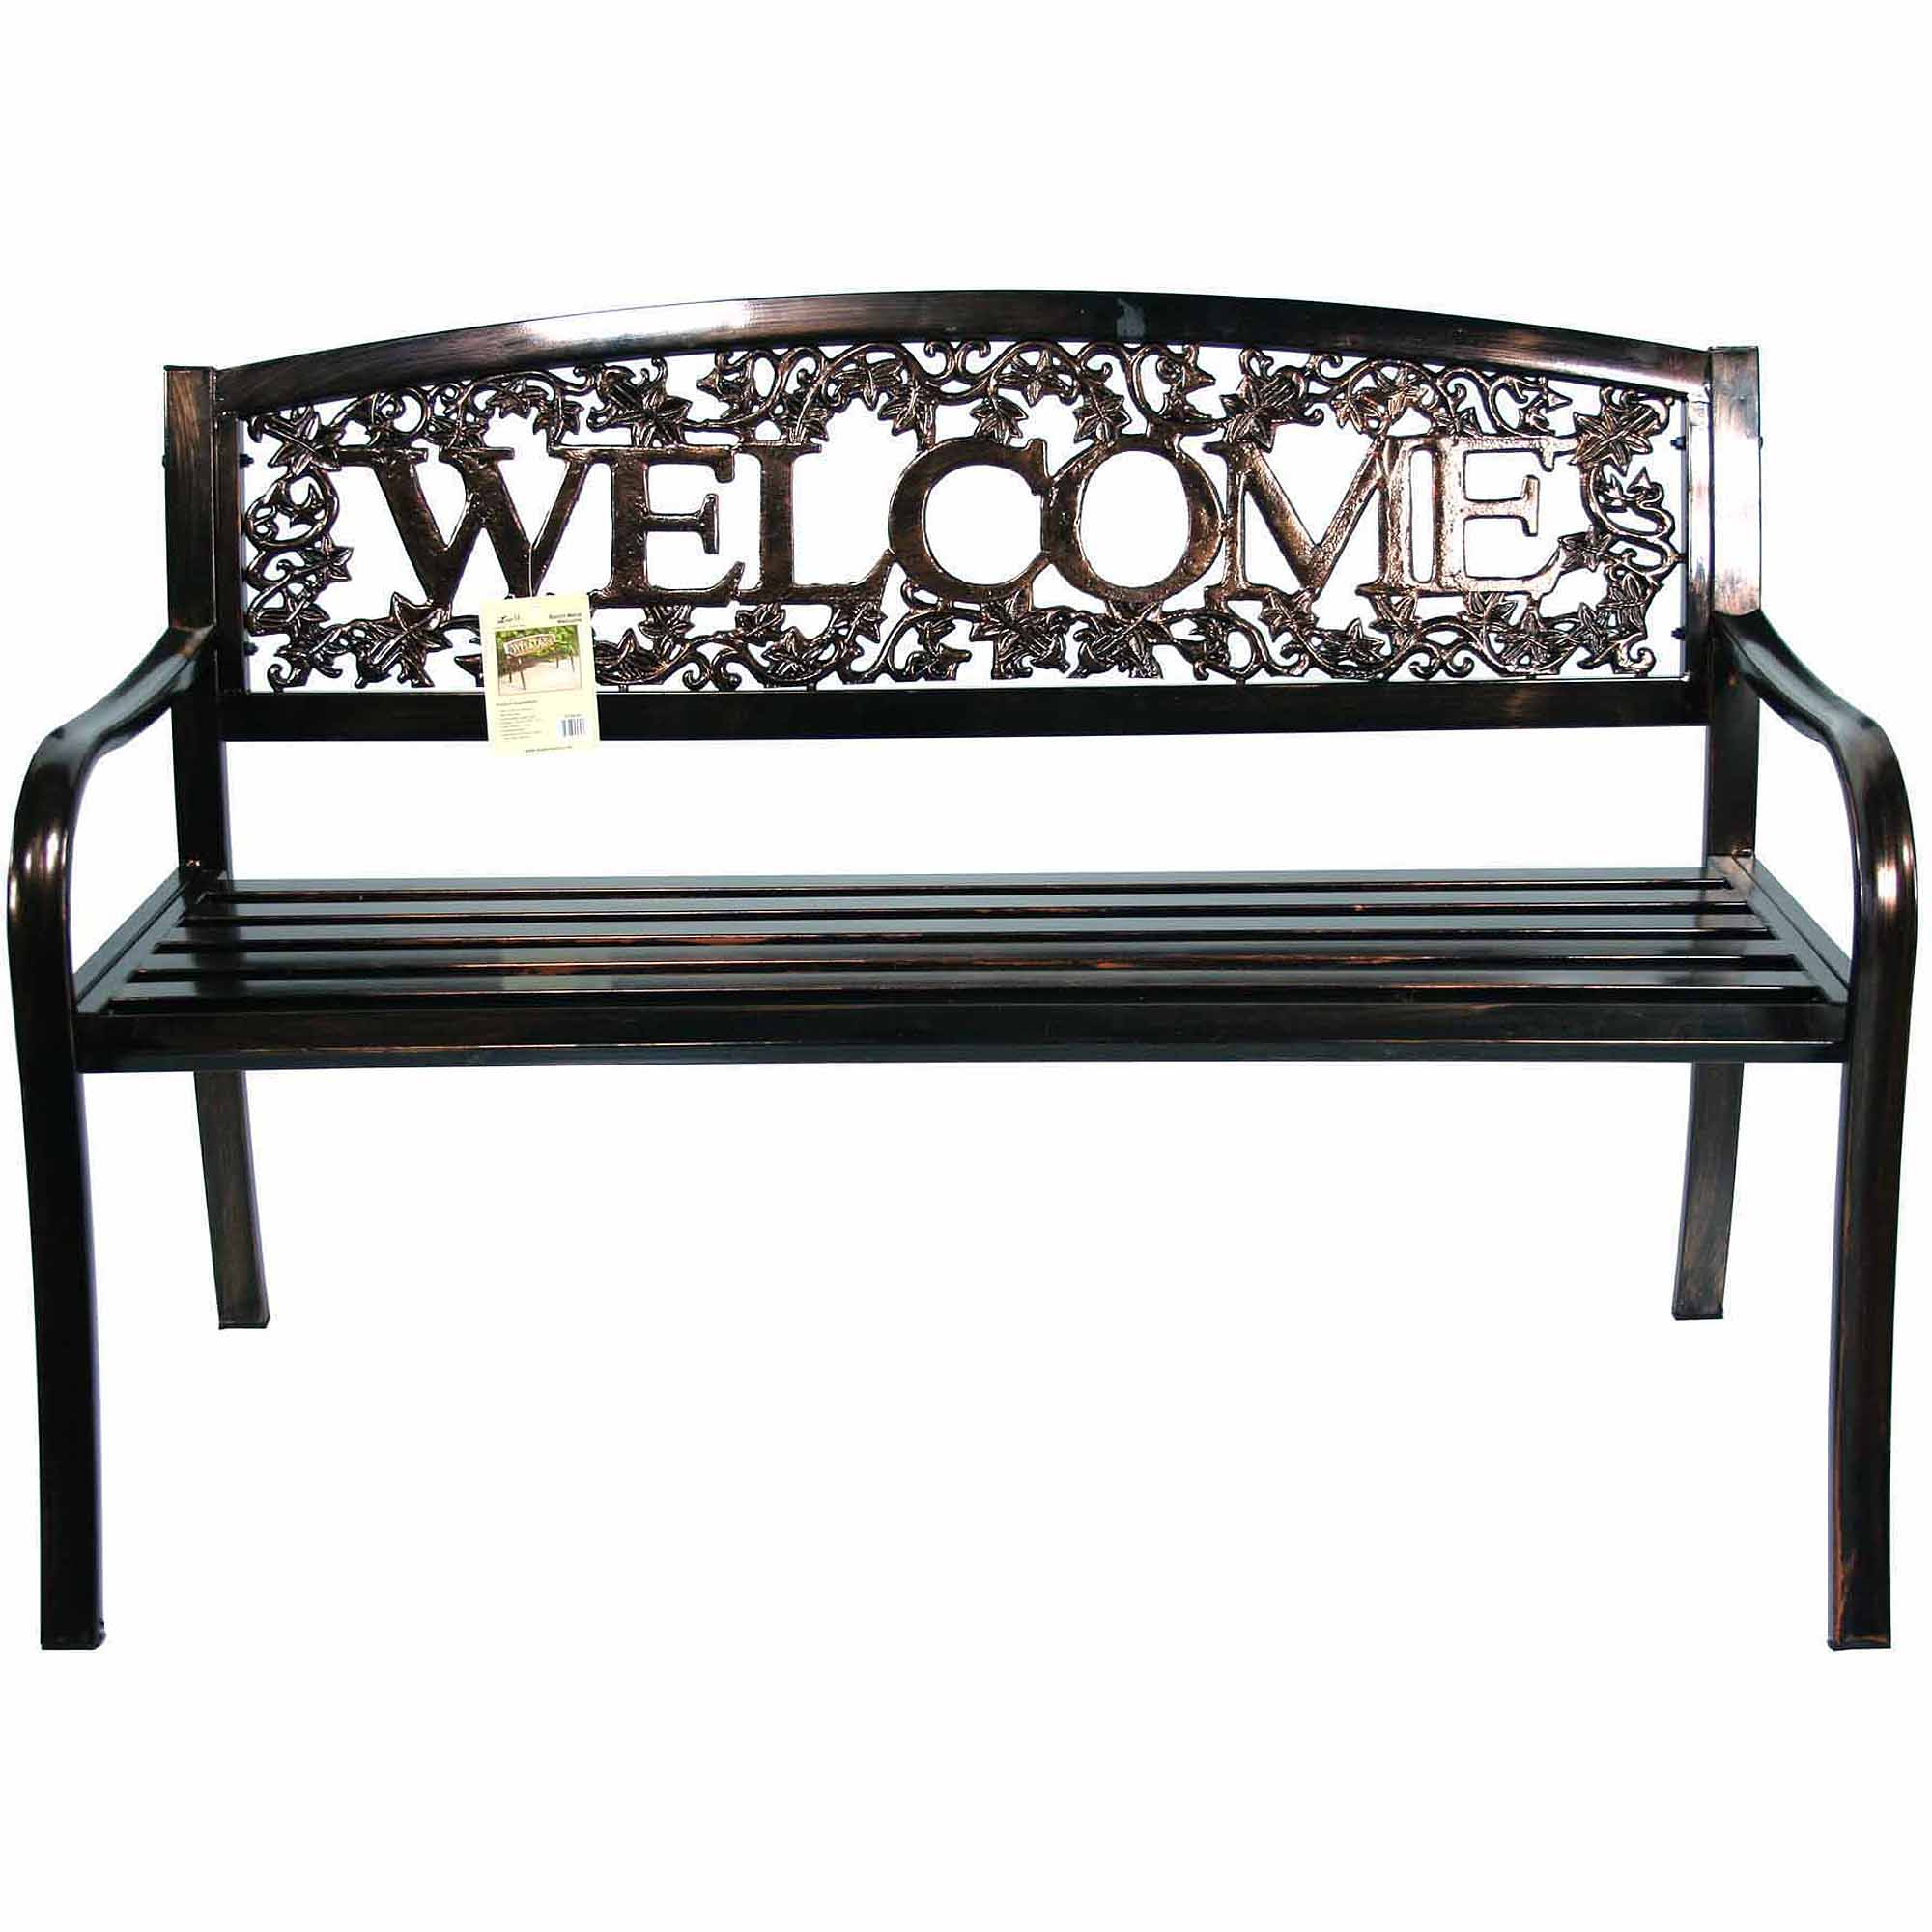 United General Supply Co Metal Welcome Bench